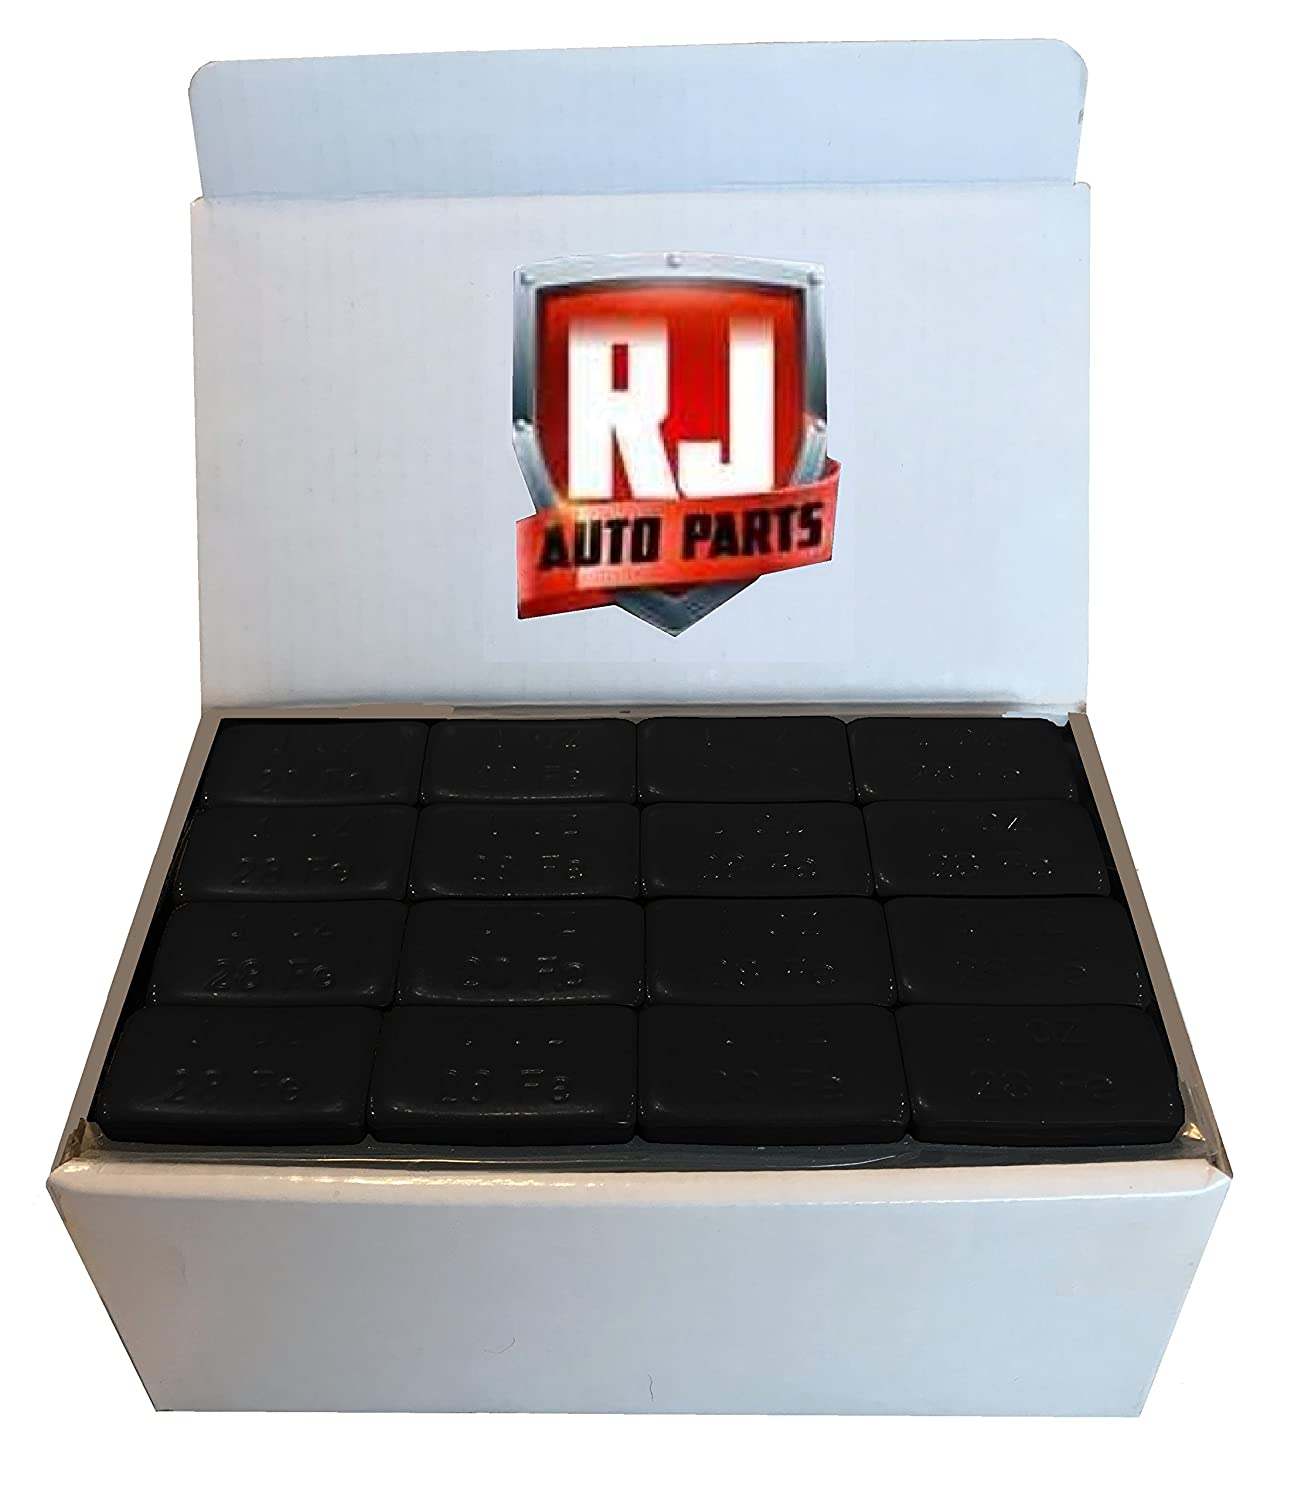 1 Box Wheel Weights, Black 1 oz., Stick-on Adhesive Tape, Lead Free (9 lbs) 144 pieces RJ Auto Parts